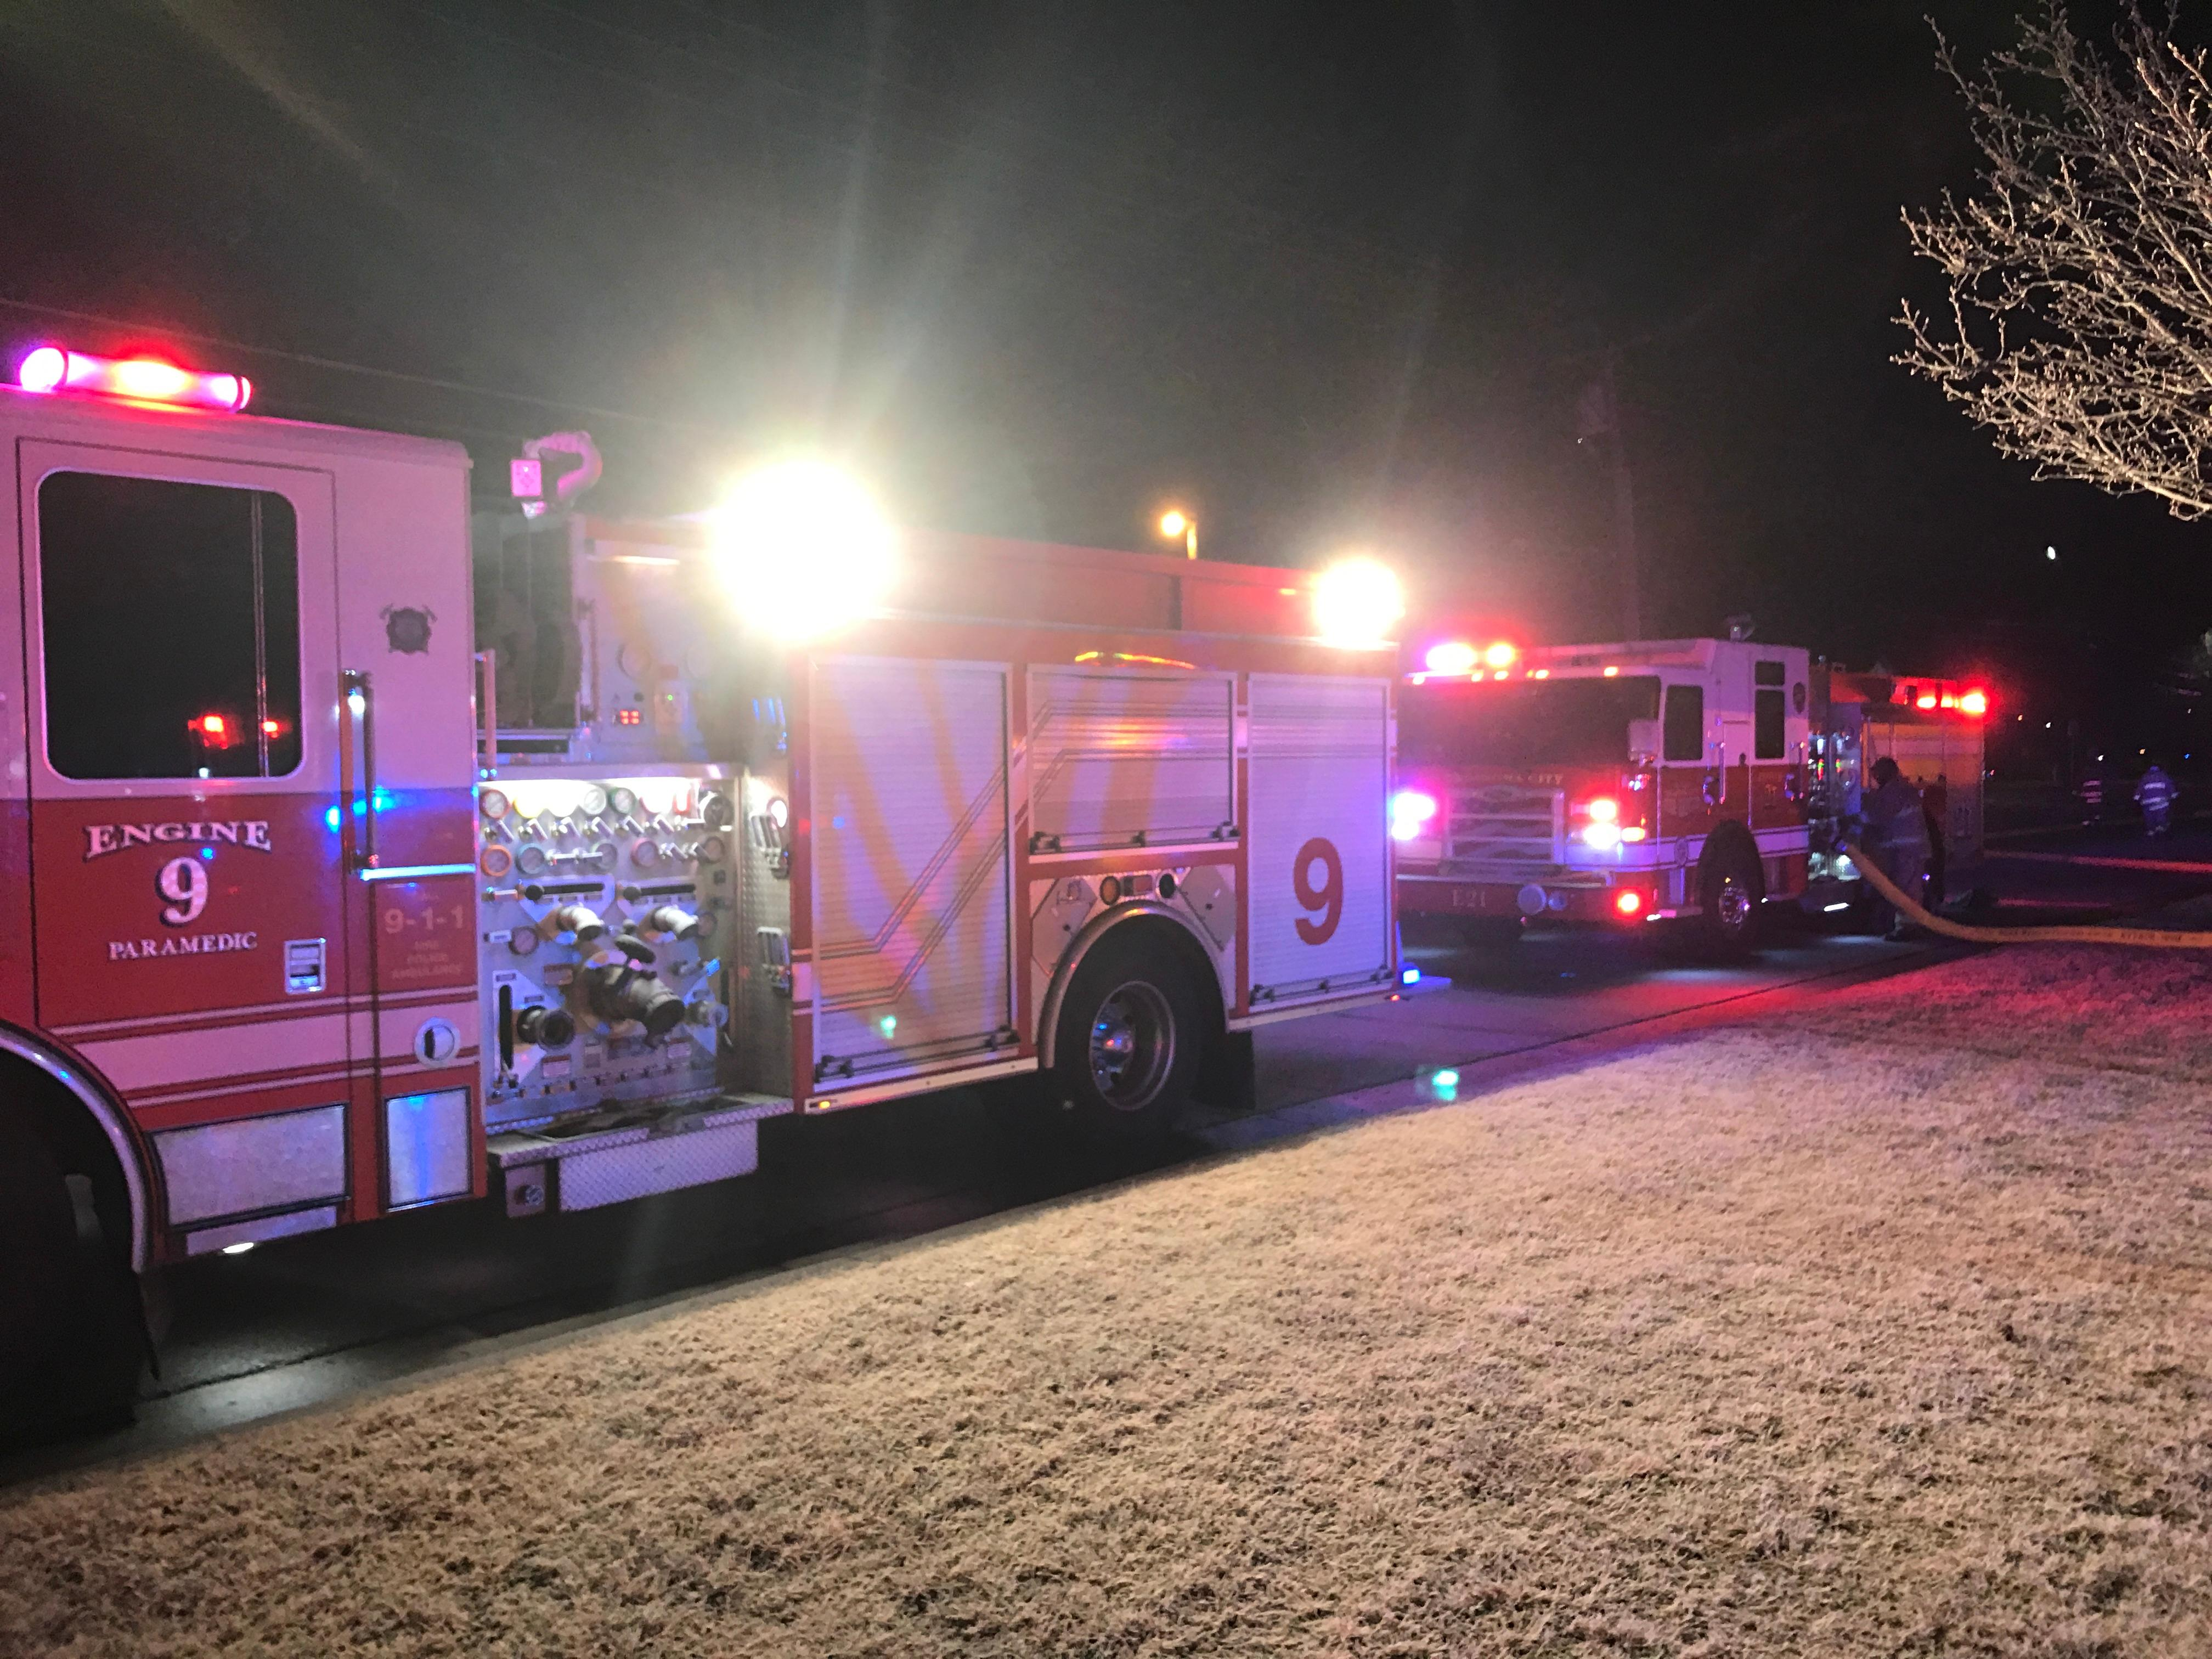 Firefighters battled ice during a frigid apartment fire early Jan. 16 in Oklahoma City. (Oklahoma City Fire Department)